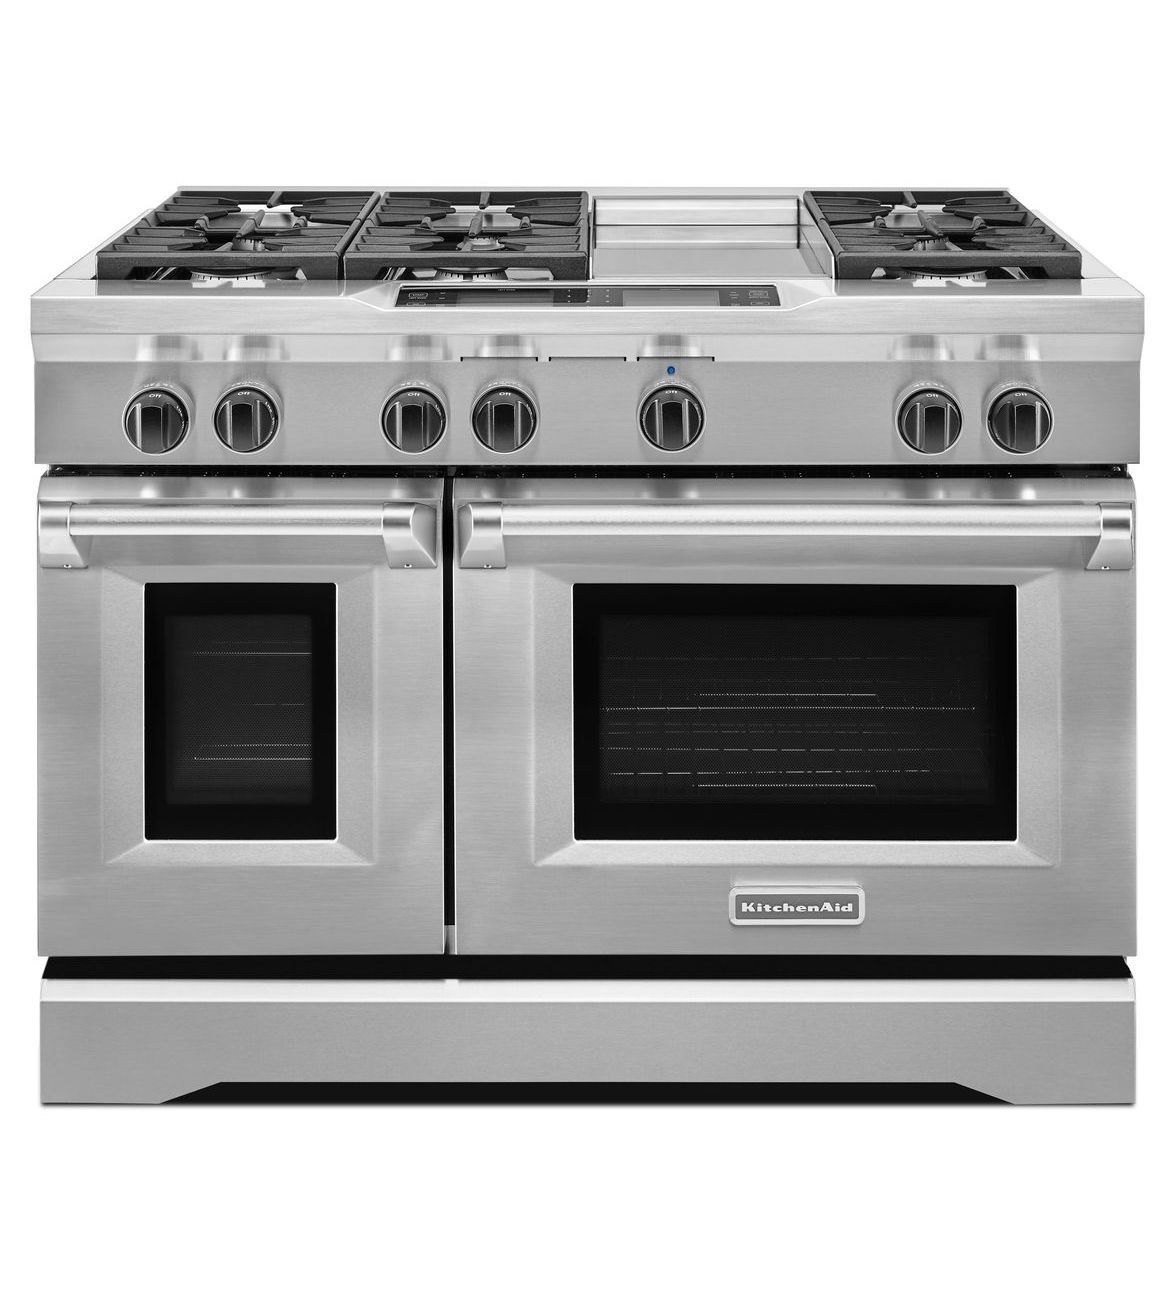 48 Inch 6 Burner With Steam Assist Oven Dual Fuel Freestanding Range Commercial Style Kdru783vss Kitchen Kitchen Aid Freestanding Ranges Dual Fuel Ranges